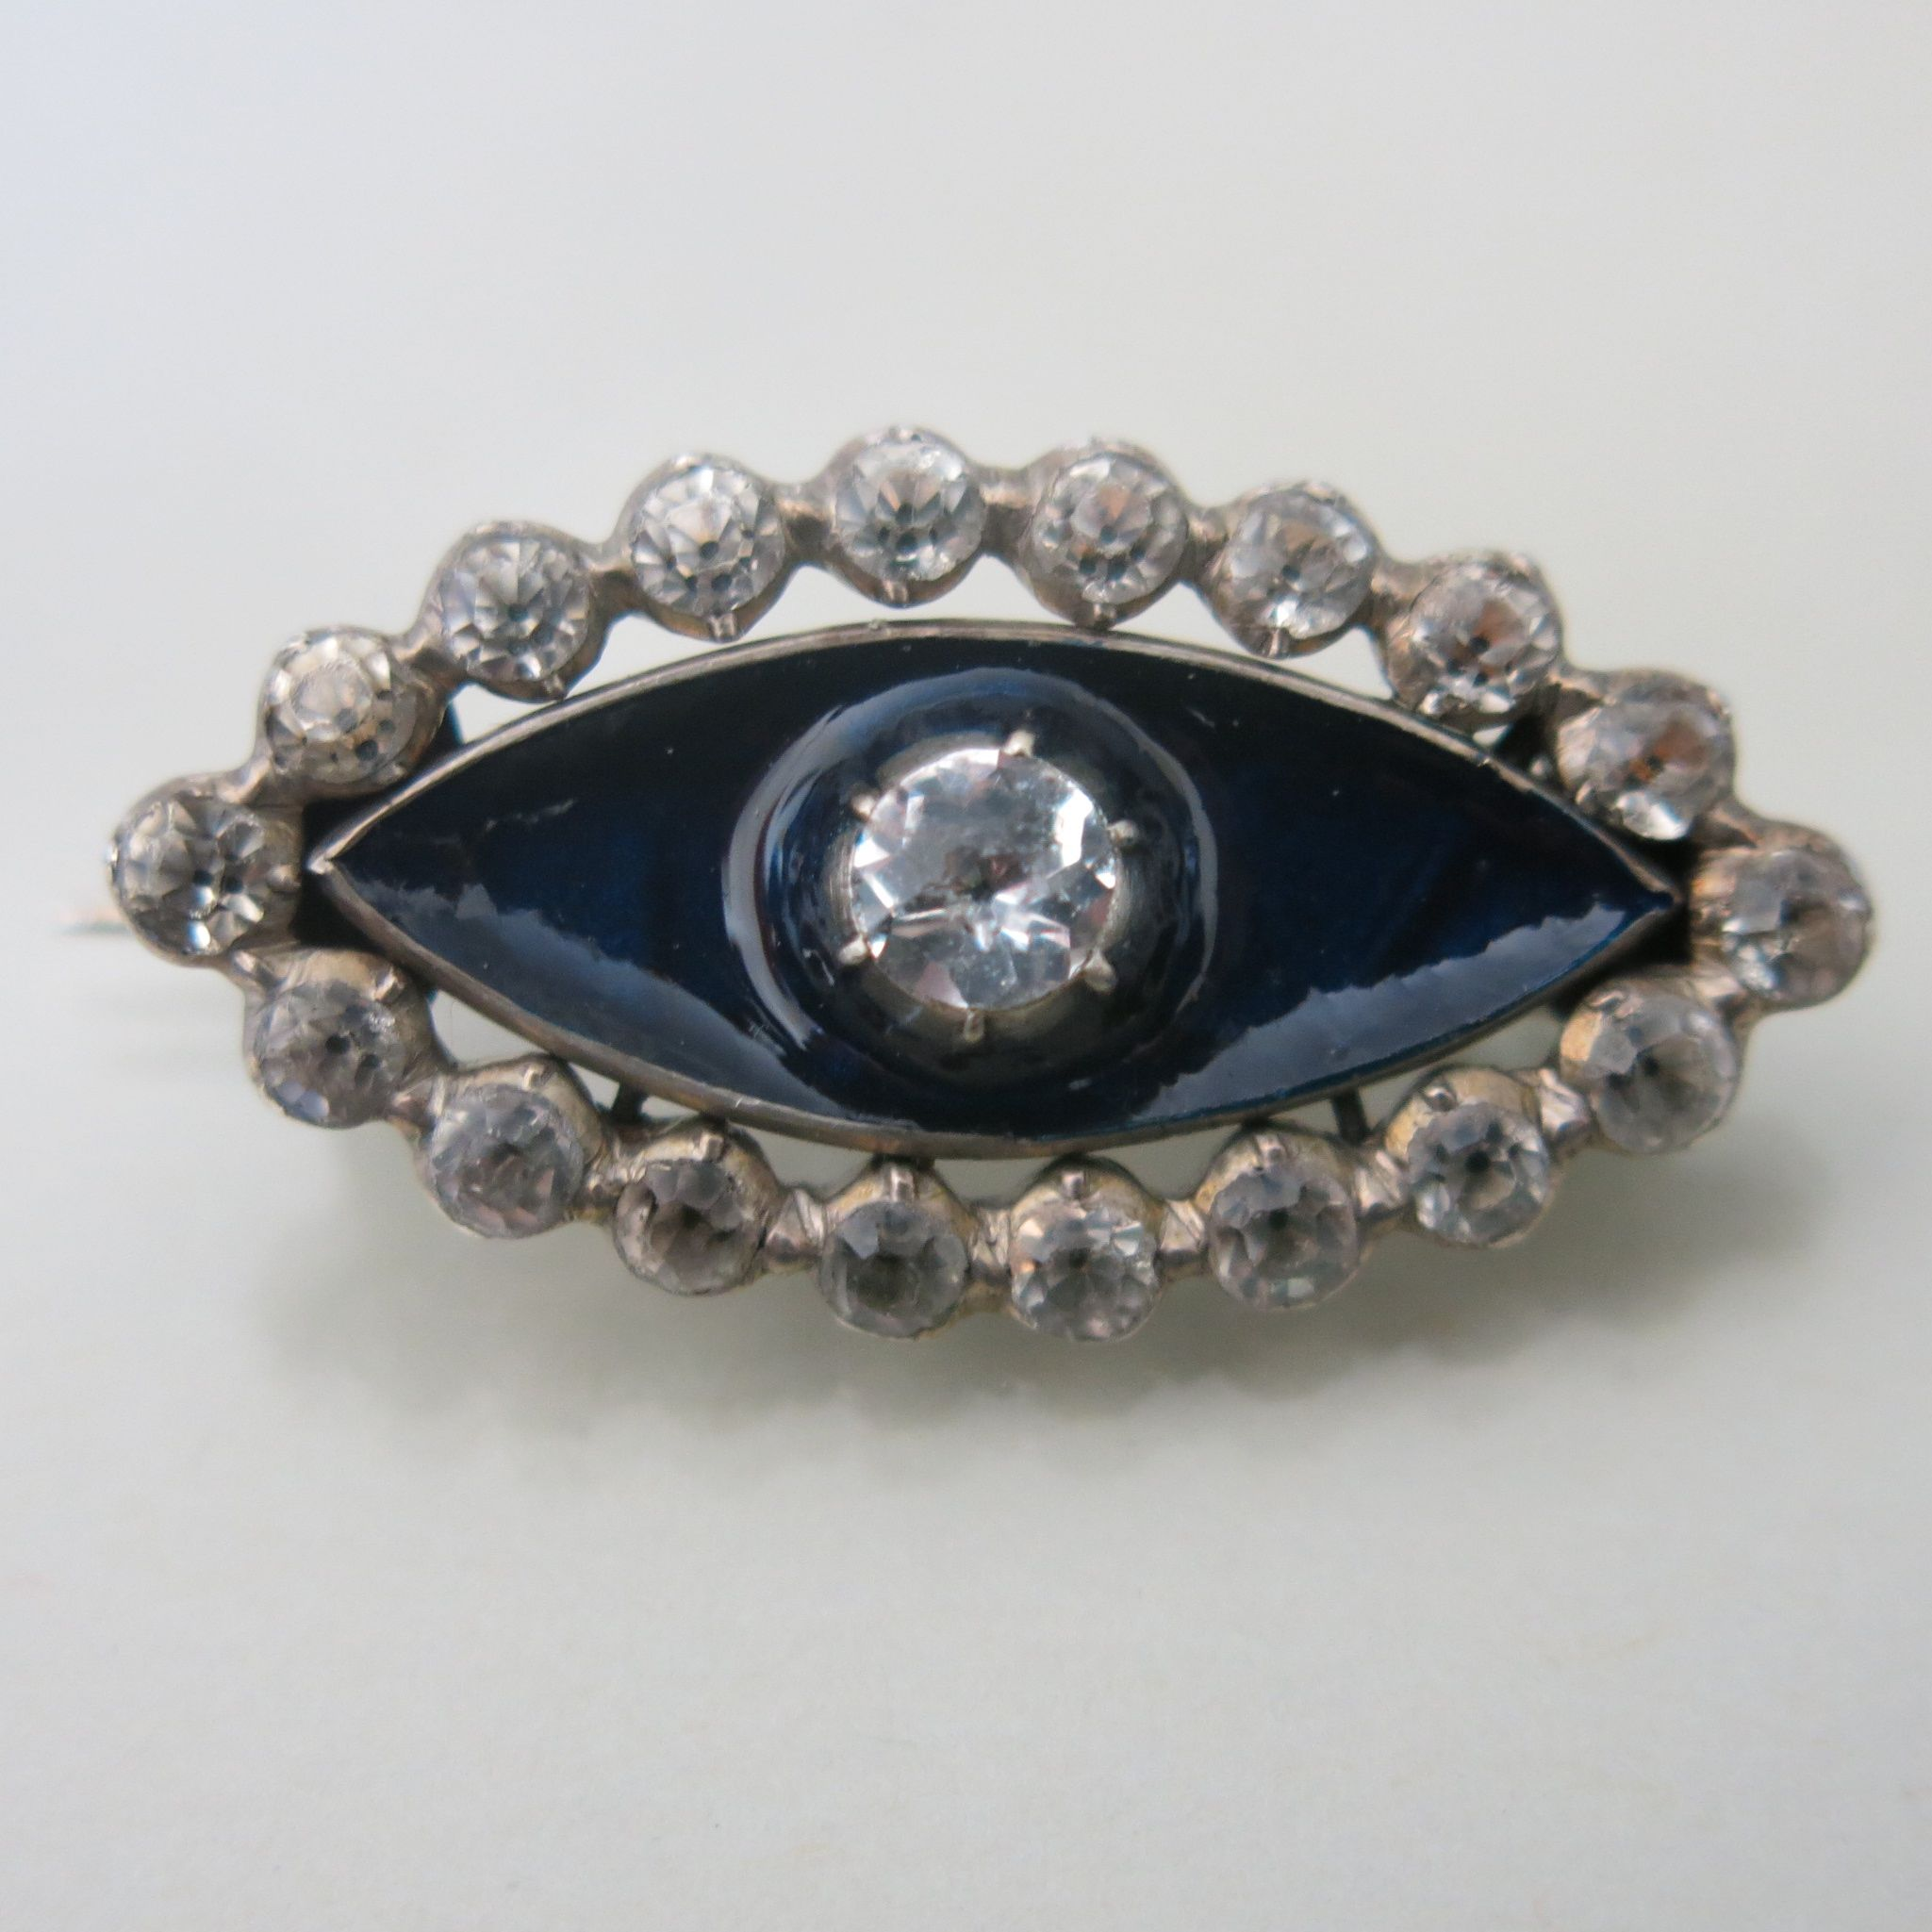 cleef brooch diamond eye jean by multi vitau lotfinder a lot gem nyr details arpels and fish van